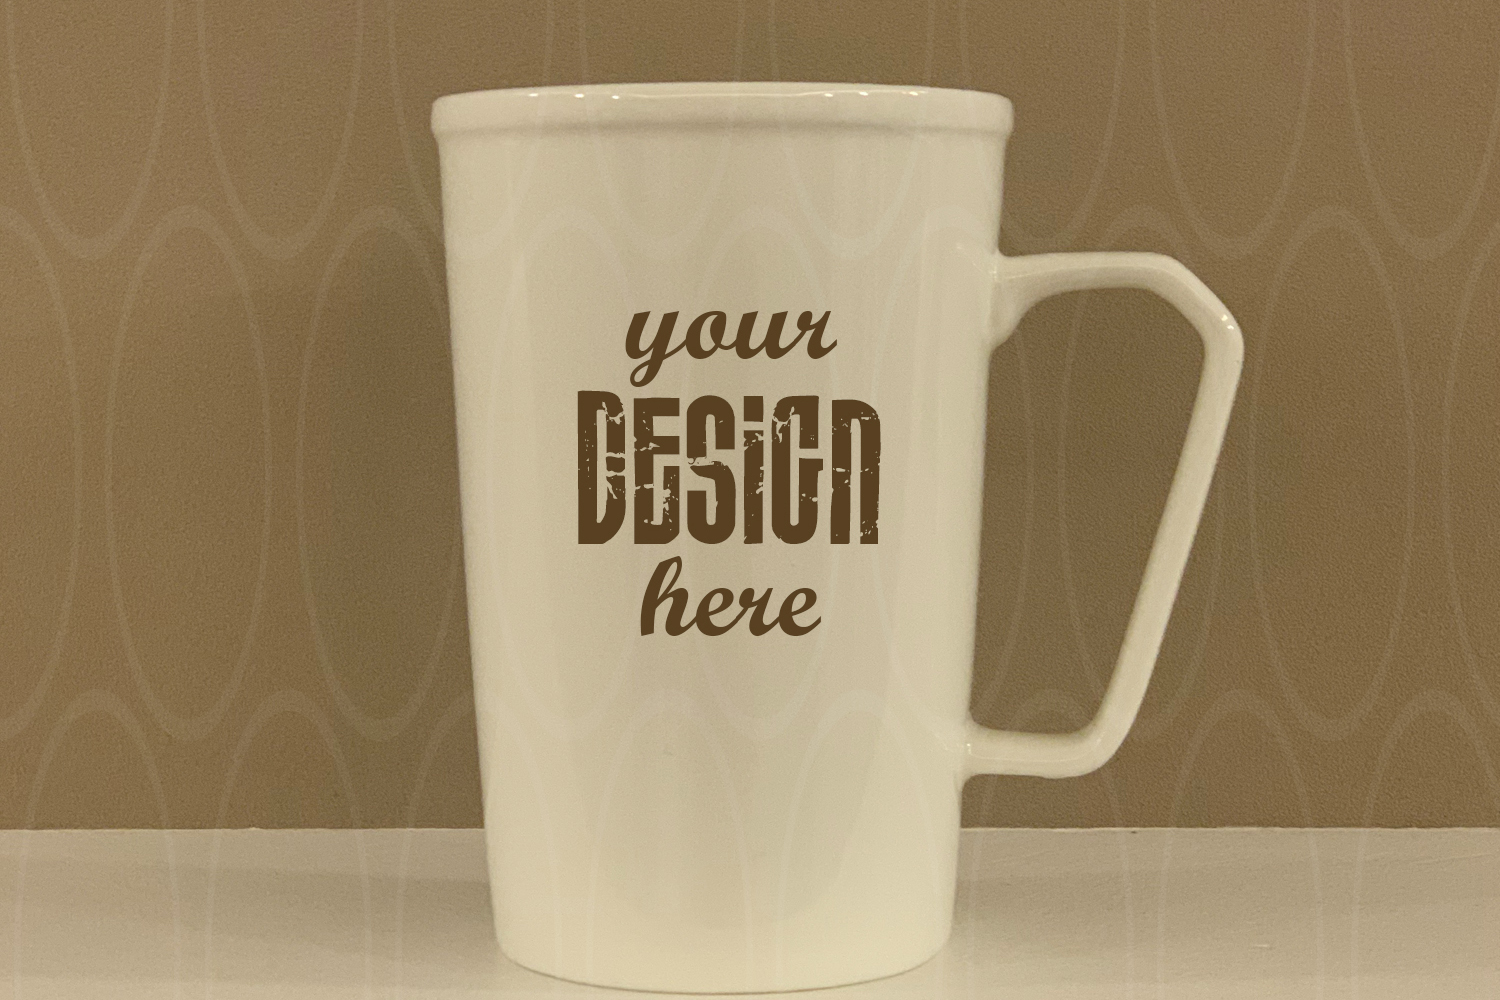 Blank White Coffee Cup Mockup Mug mock up Product Graphic example image 1